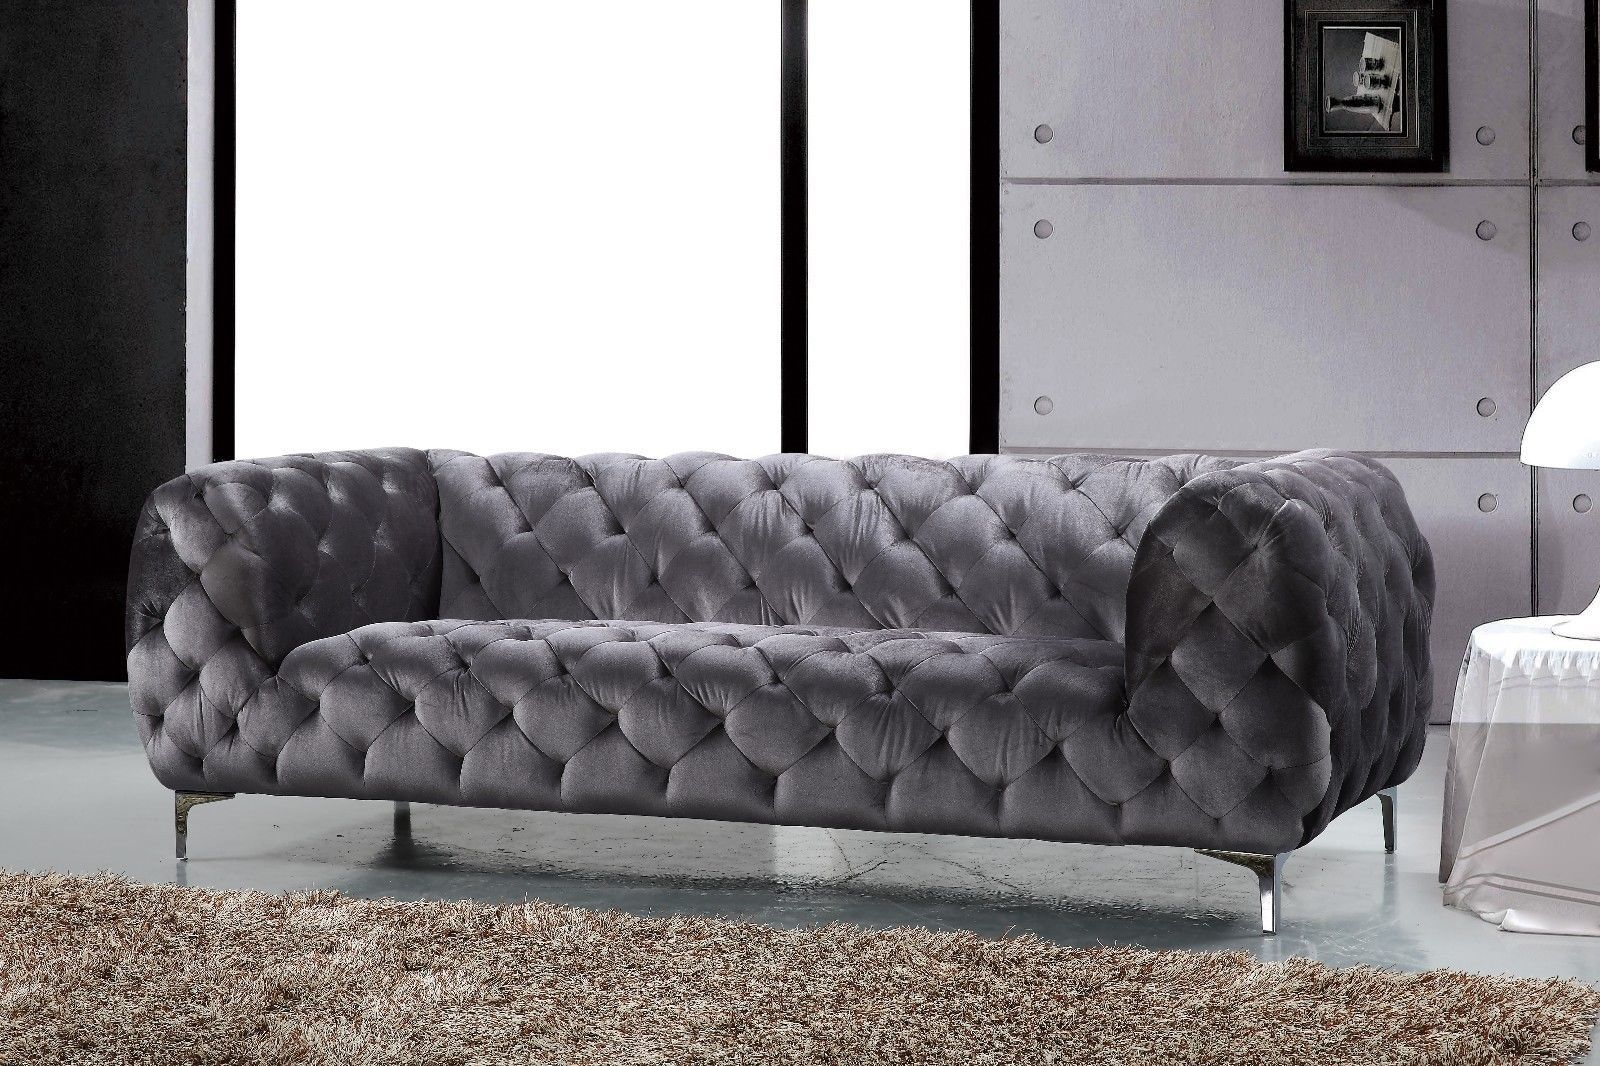 Meridian 646 Grey Velvet Living Room Sofa Set 2pc. Chic Contemporary Style